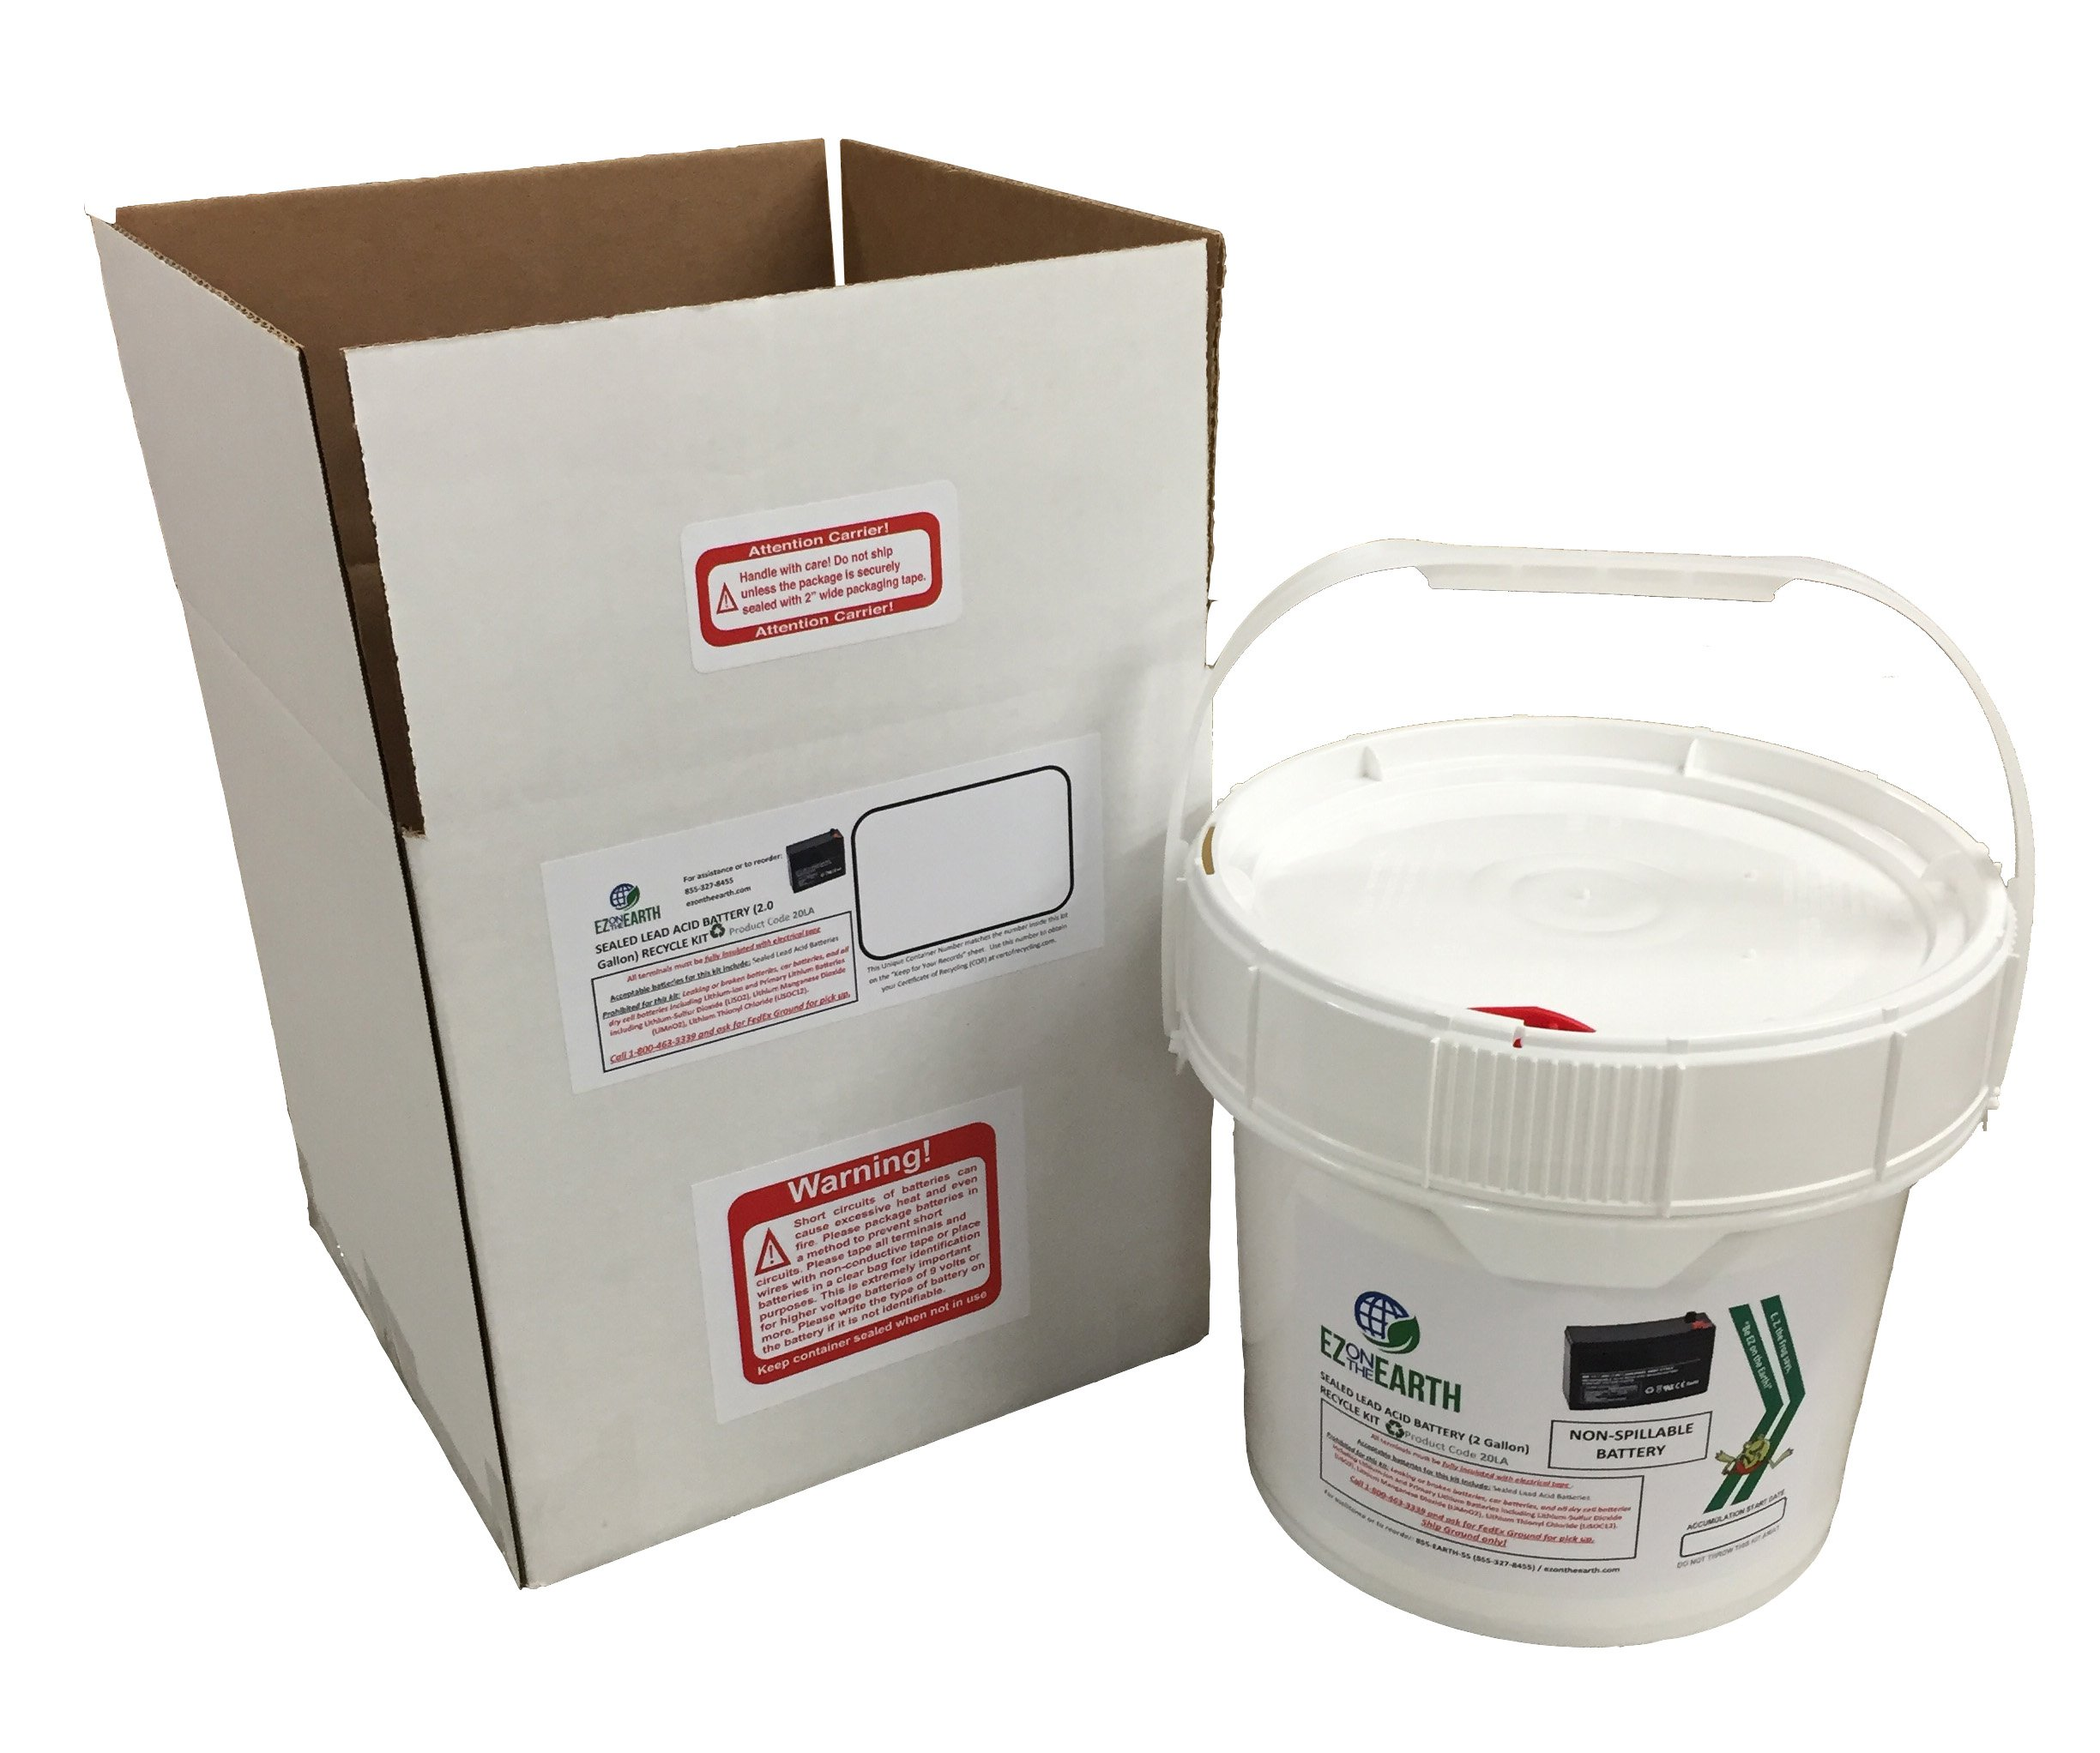 EZ on the Earth, Lead Acid Battery Recycling Kit, 2.0 Gallon Battery Recycling Pail, Pre-Paid, Mail-Back Recycle Kit for Lead Acid Batteries